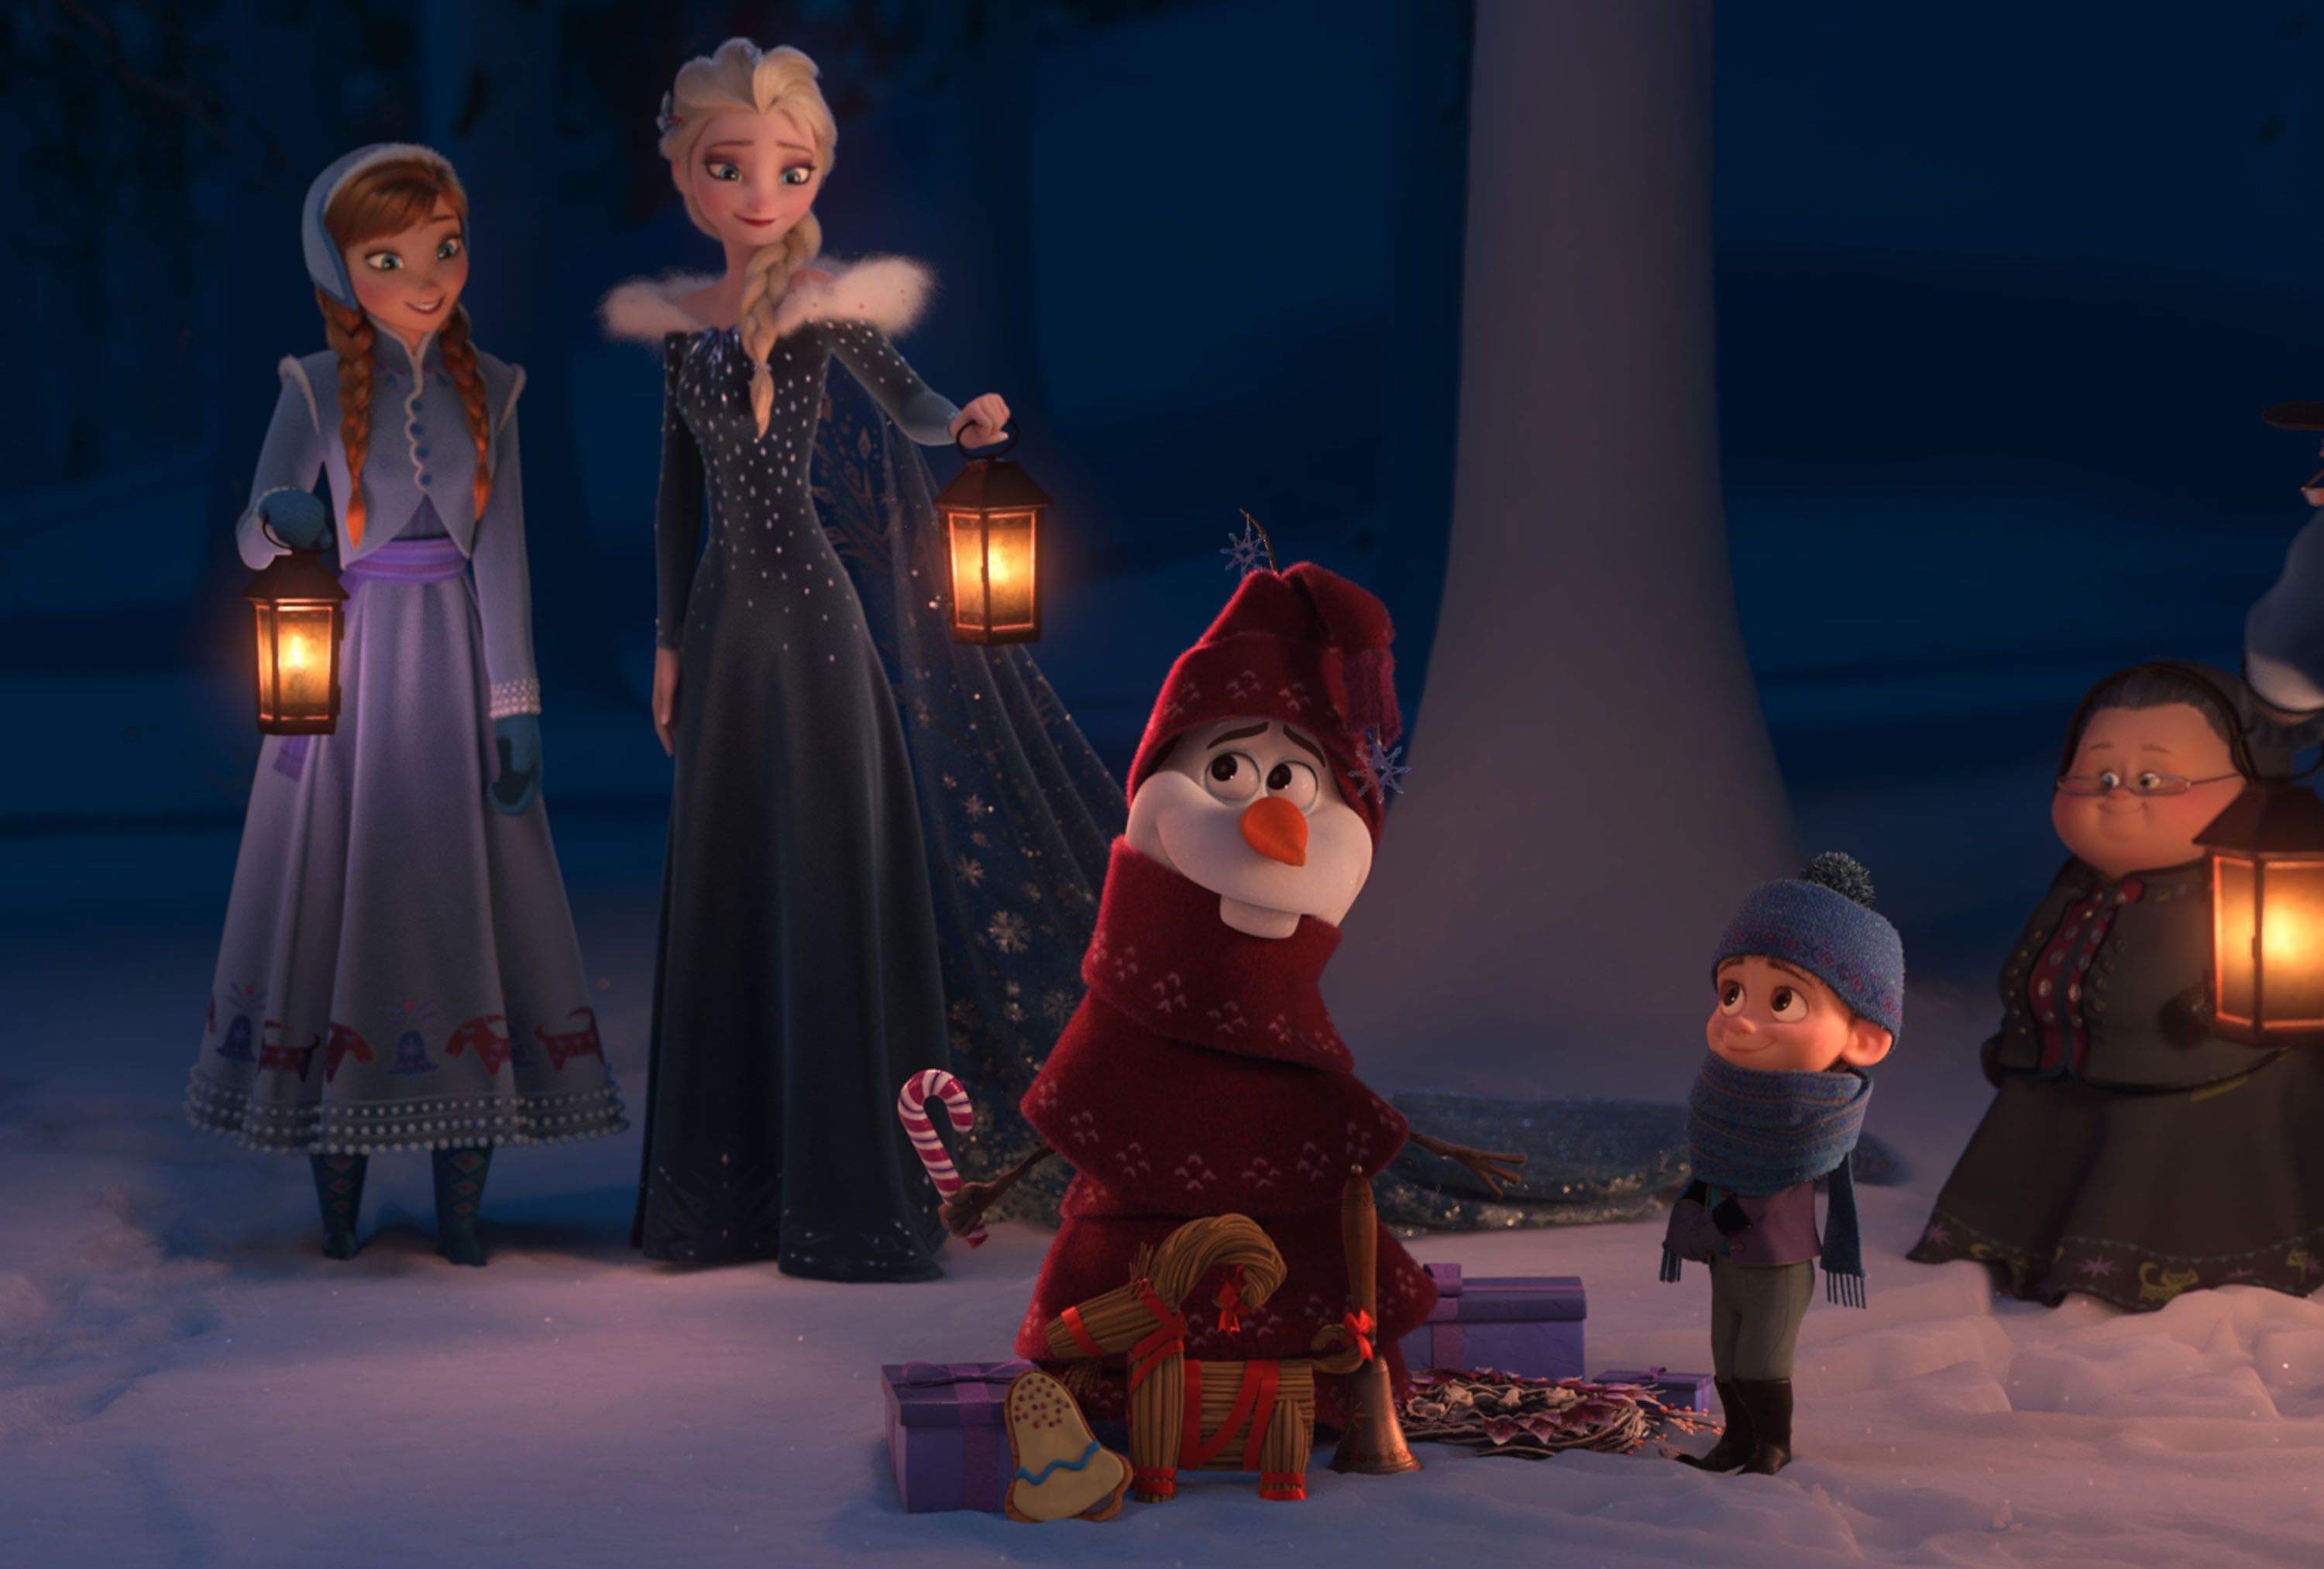 Olaf S Frozen Adventure Producer On Furthering The